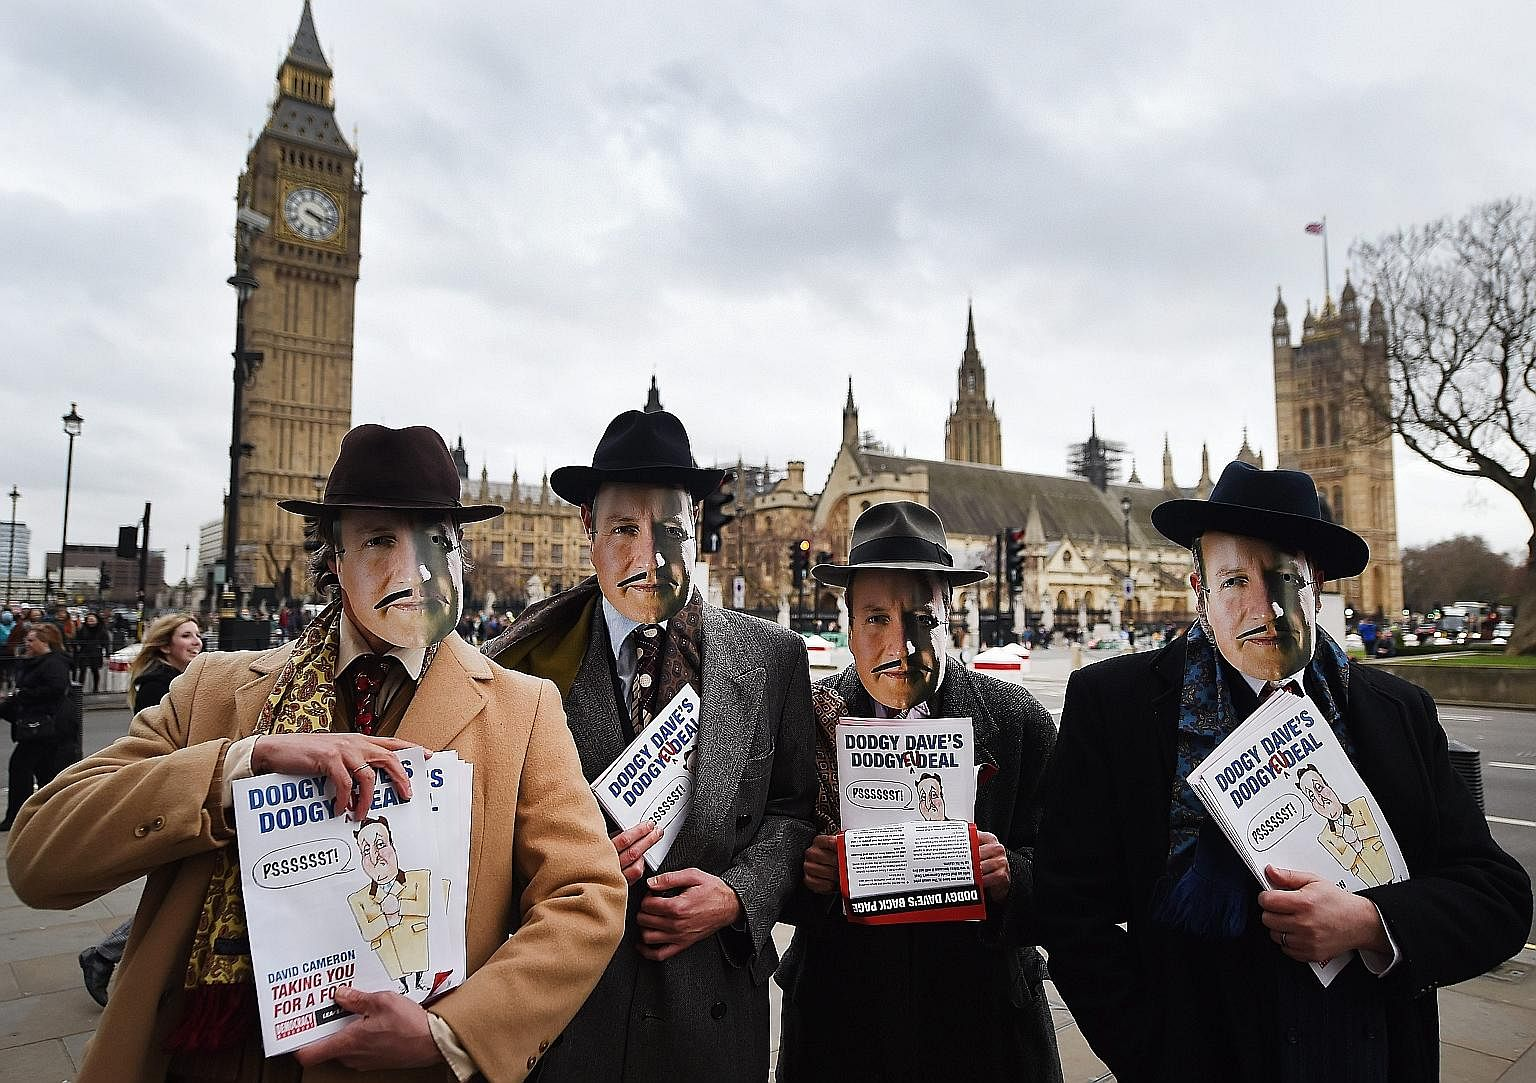 Anti-European Union demonstrators Grassroots Out dressed as British Prime Minister David Cameron protesting outside Parliament in London, Britain, on Feb 19. Mr Cameron has promised a new law putting beyond doubt the sovereignty of the UK legislature